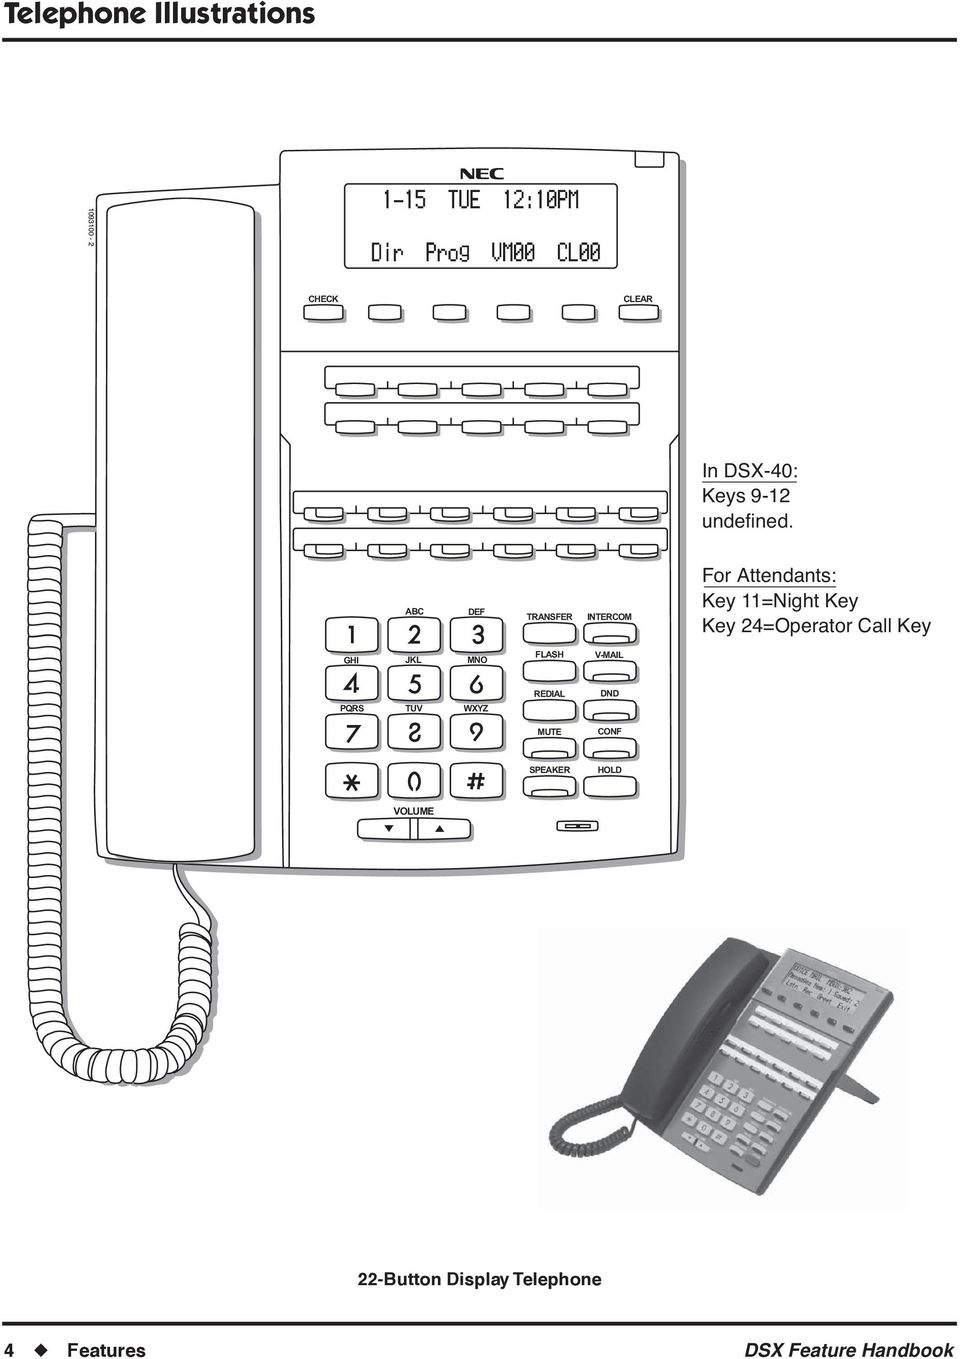 ABC DEF TRANSFER INTERCOM For Attendants: Key 11=Night Key Key 24=Operator Call Key GHI